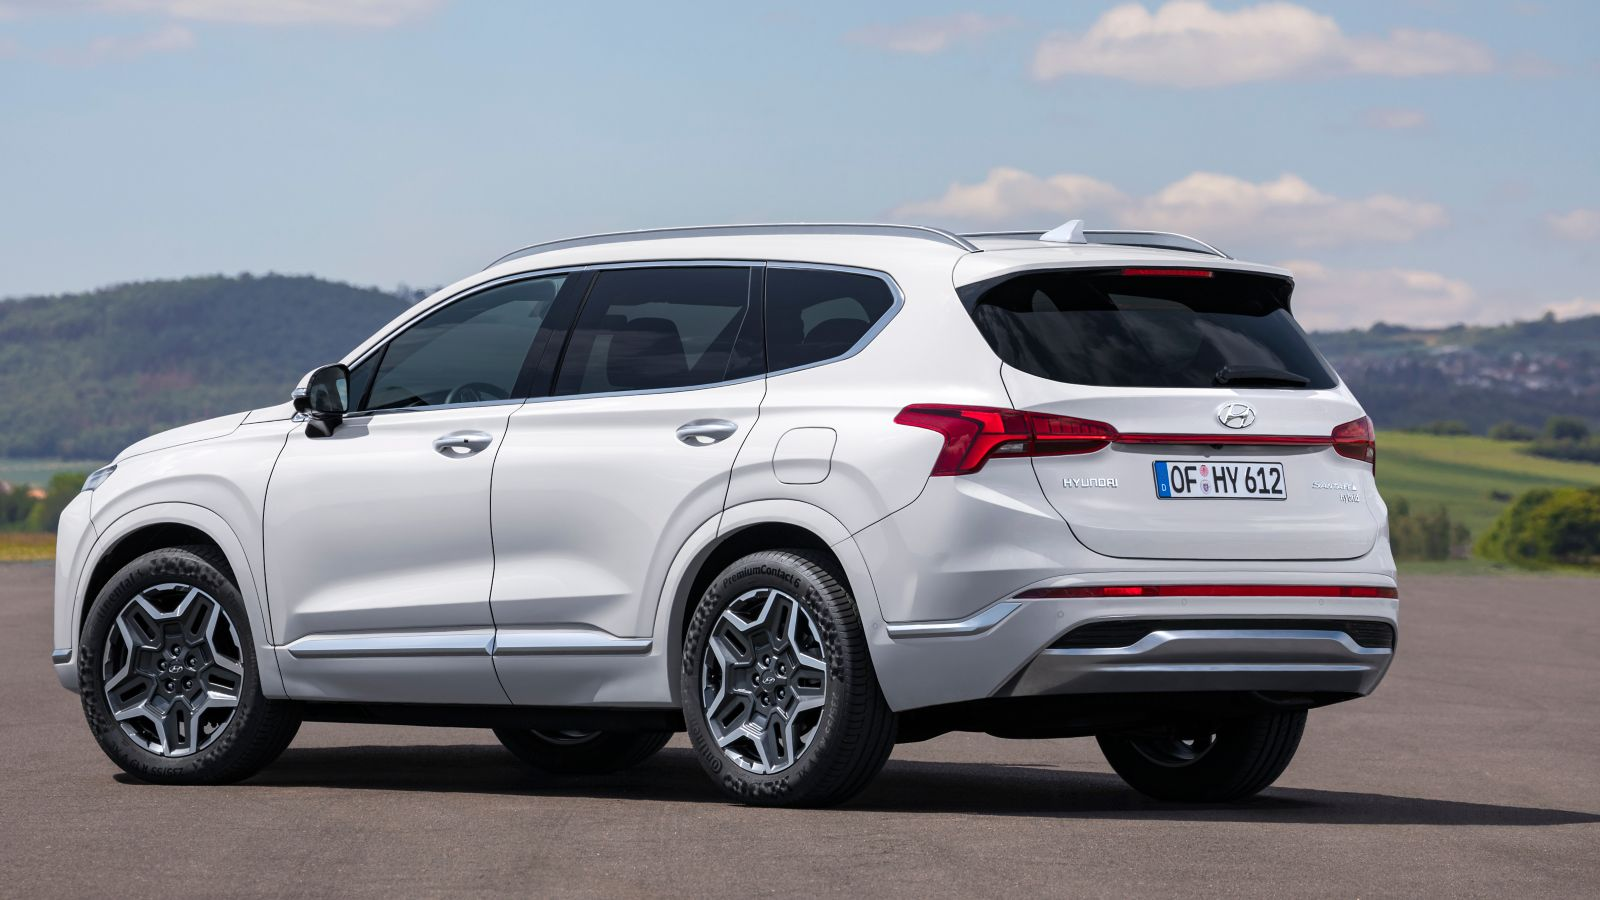 The new Hyundai Santa Fe SUV pictured from the side, parked on a country road.